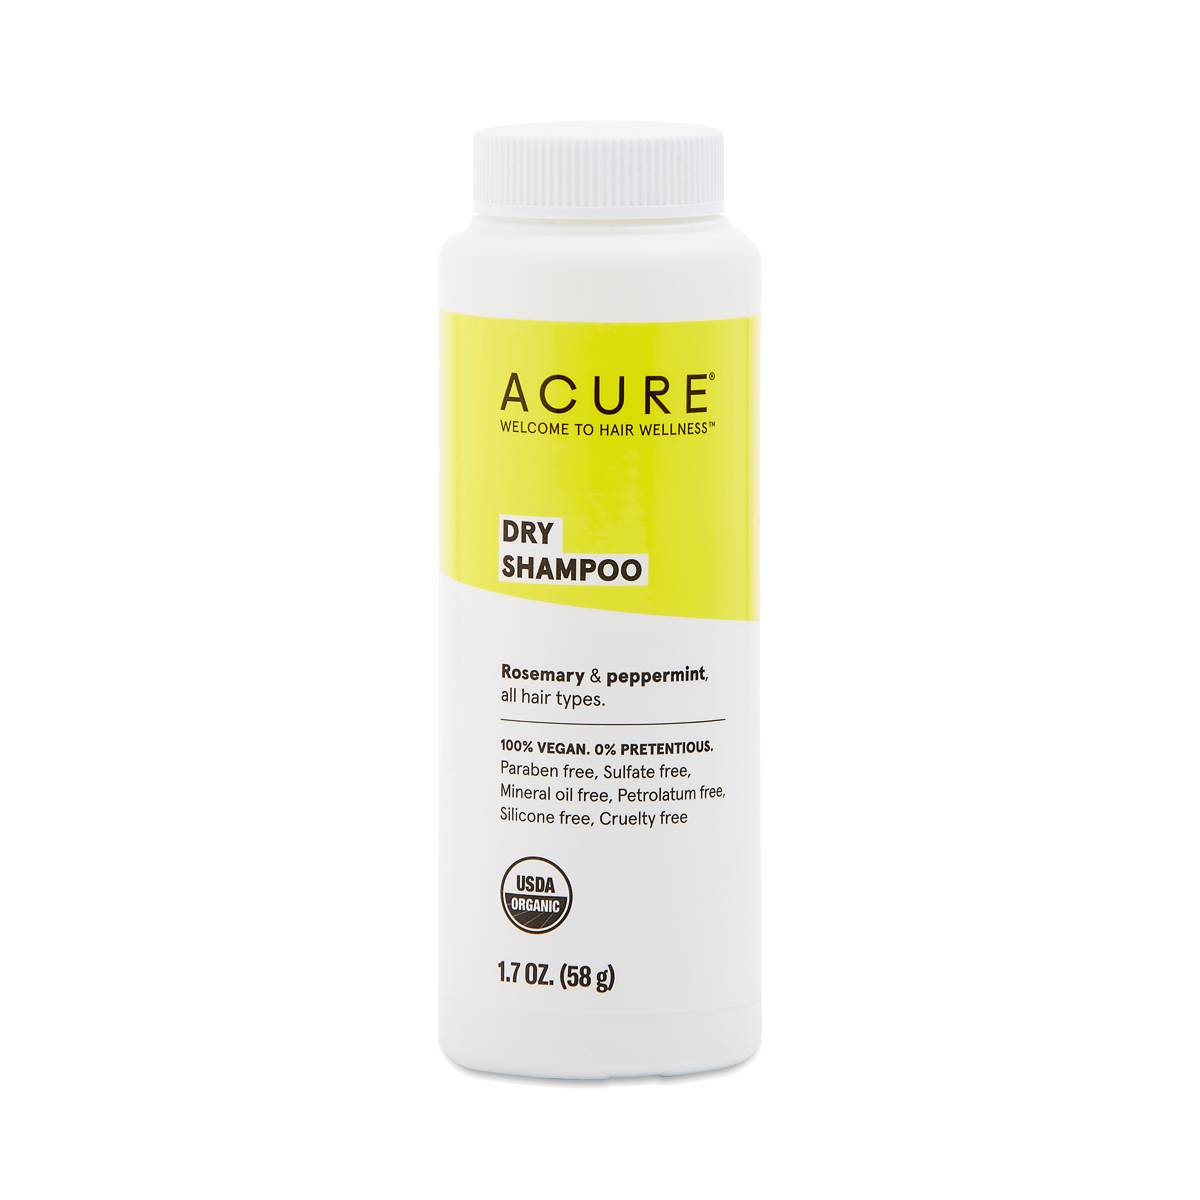 Dry Shampoo by Acure - Thrive Market